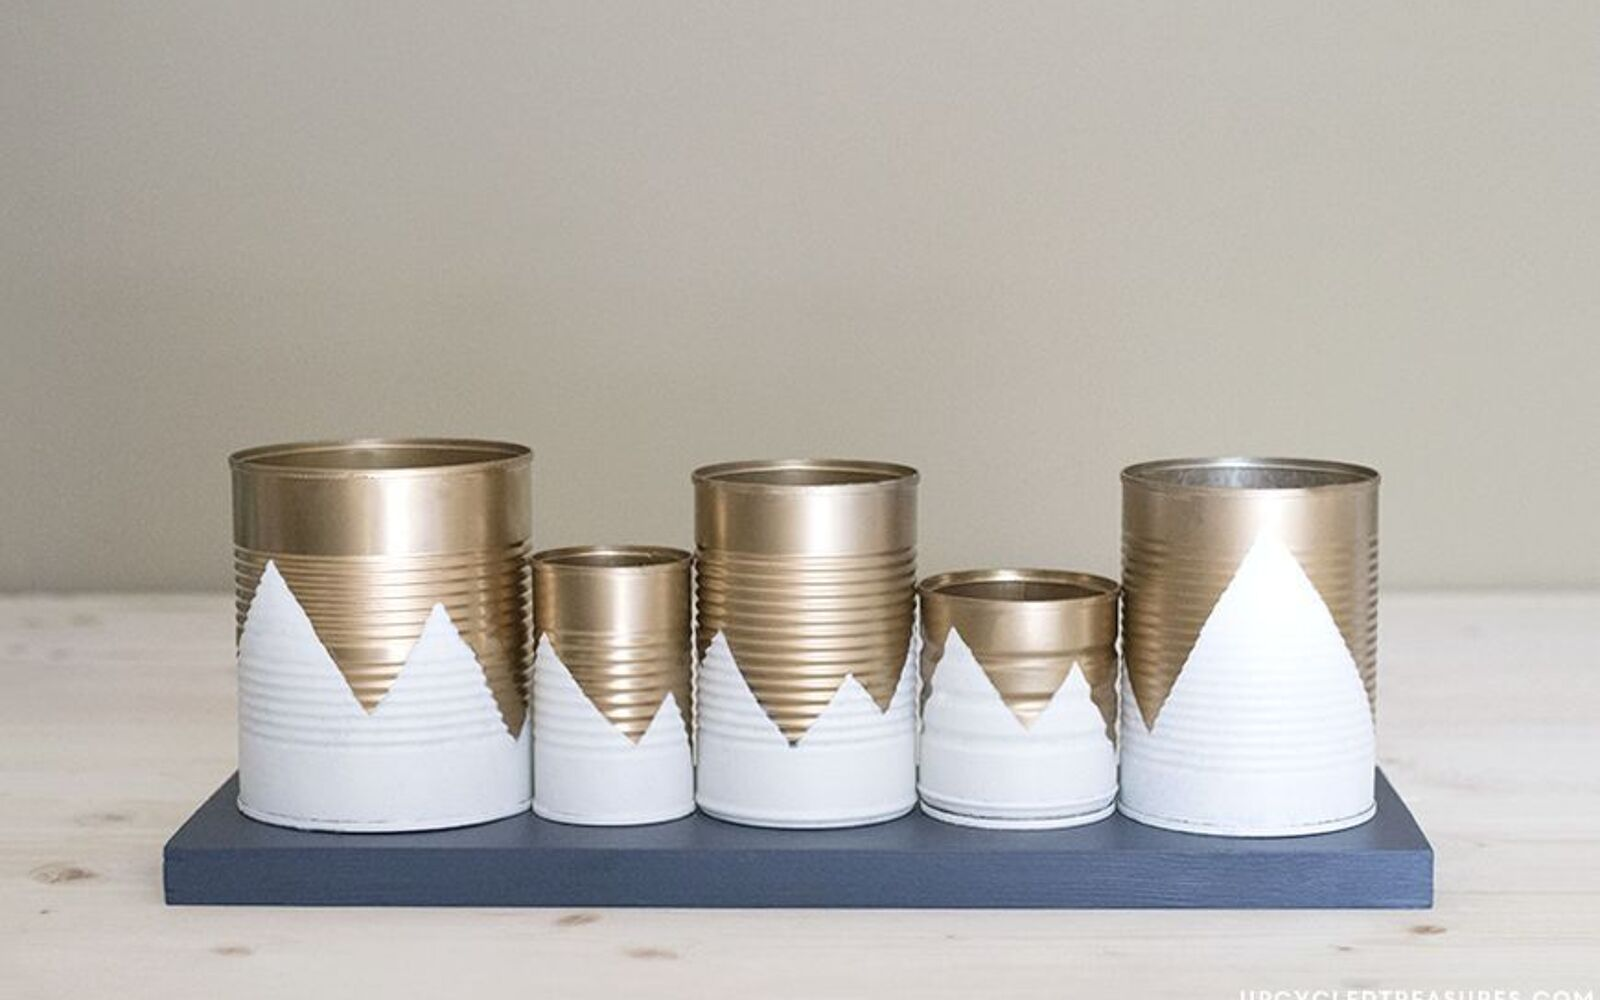 s post, Craft Tin Cans Into Pencil Holders With Spray